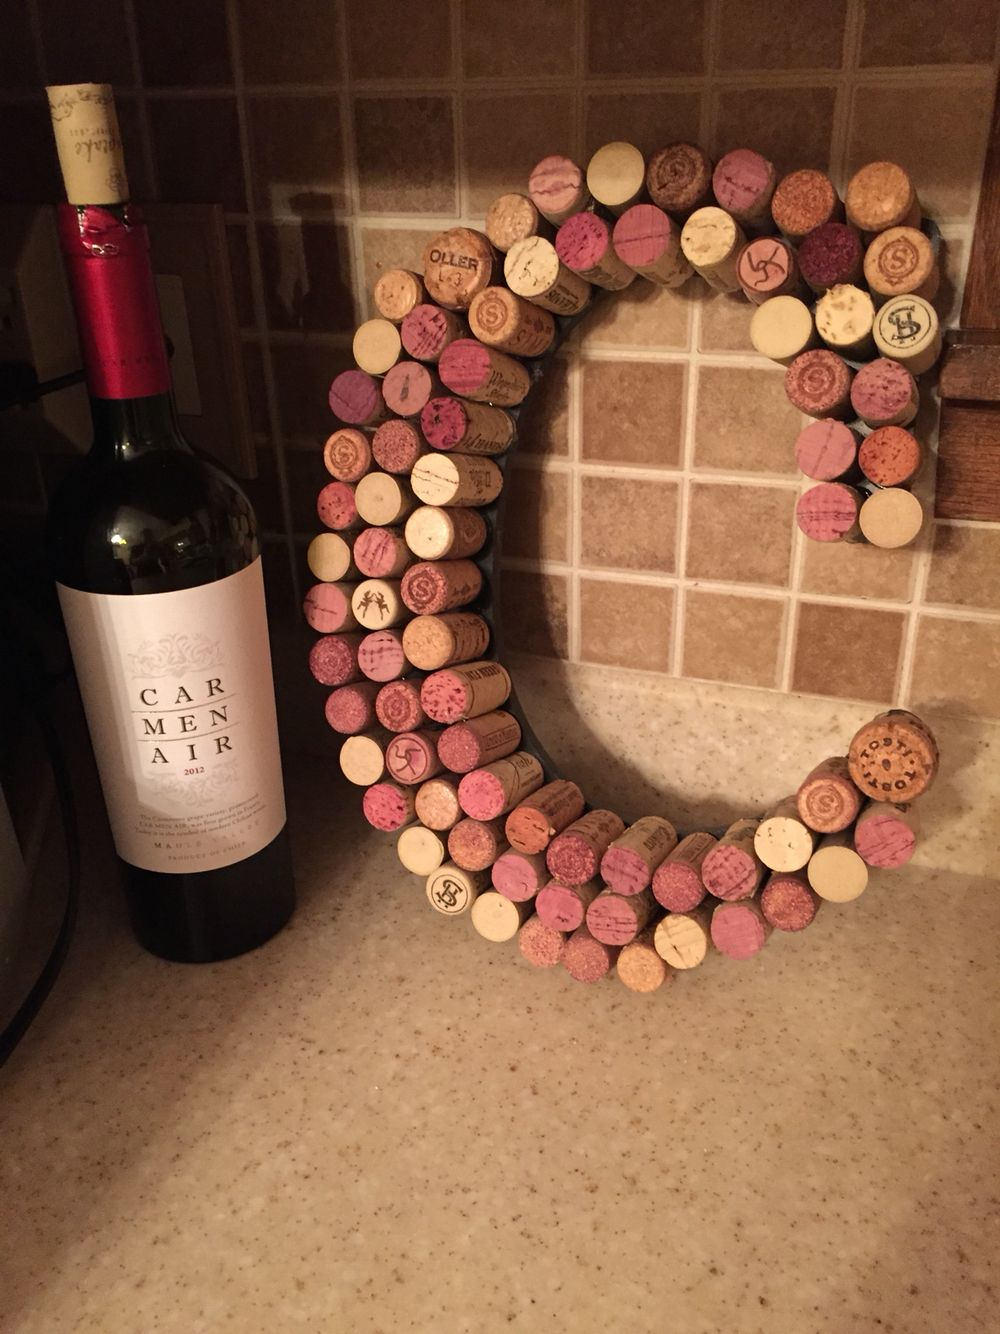 A wine cork letter that I made